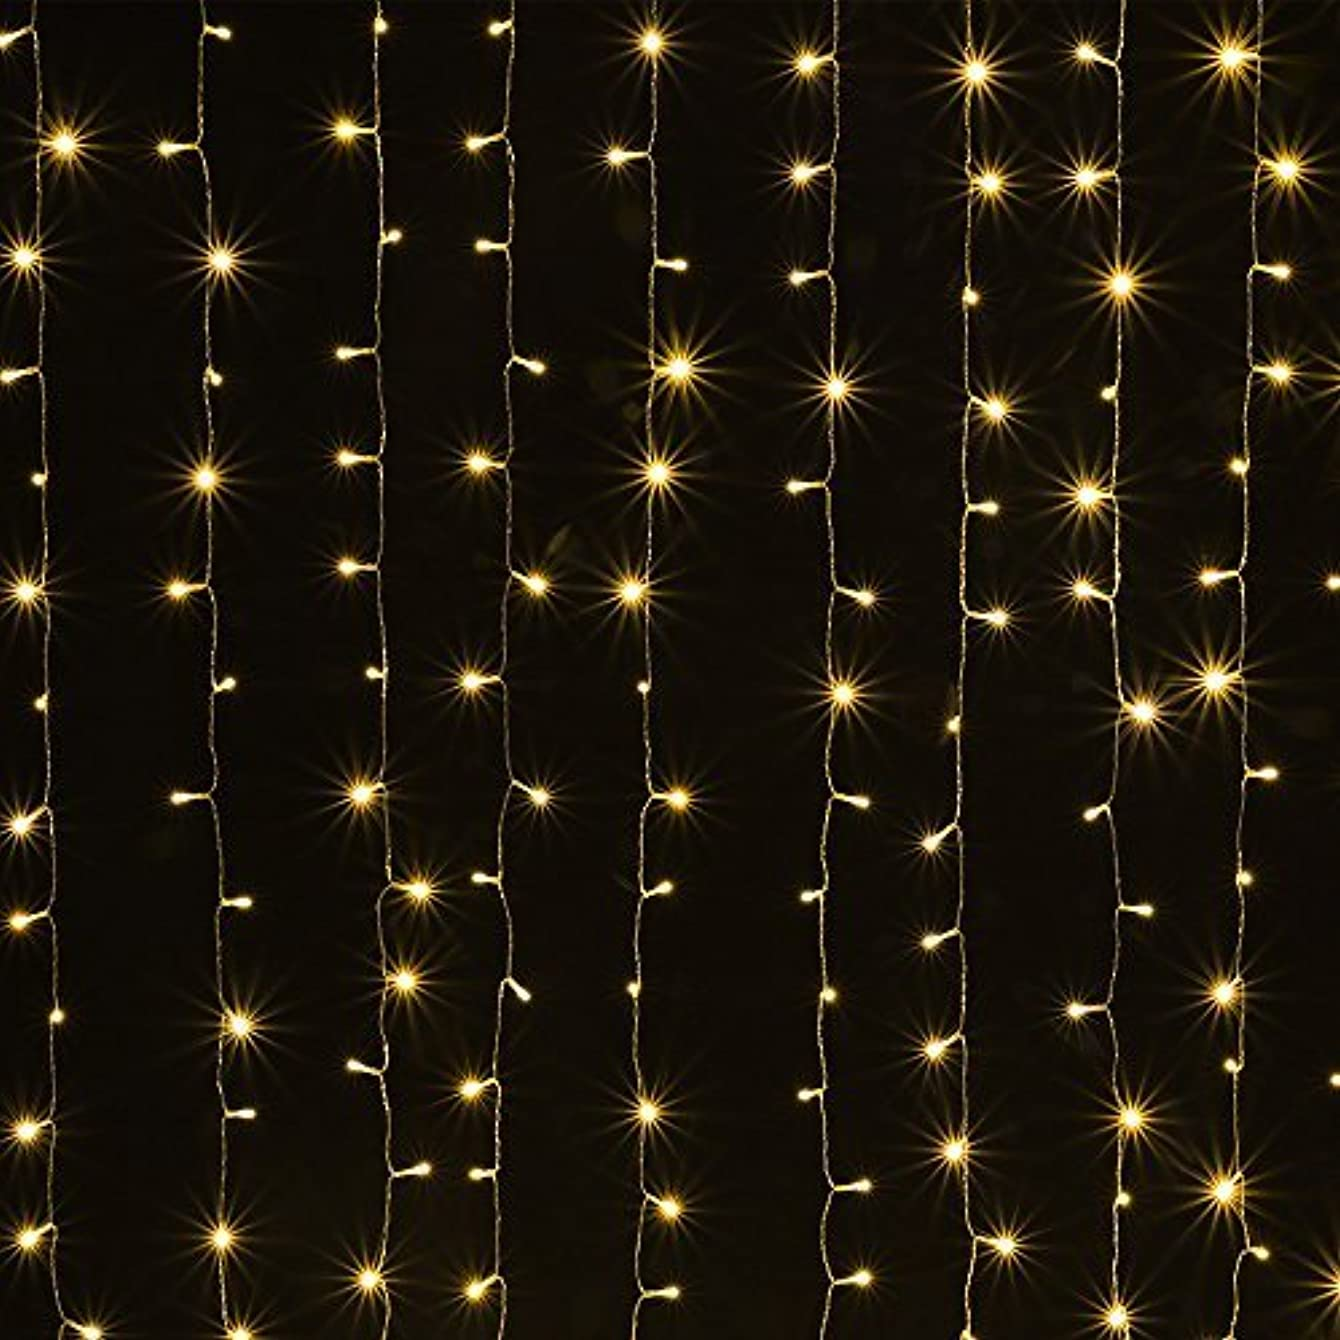 AGPTEK Solar Powered Curtain Icicle Lights, 3M X 3M 8 Modes Fairy String Lights for Christmas Wedding Home Garden Outdoor Window (300 LED) - Warm White